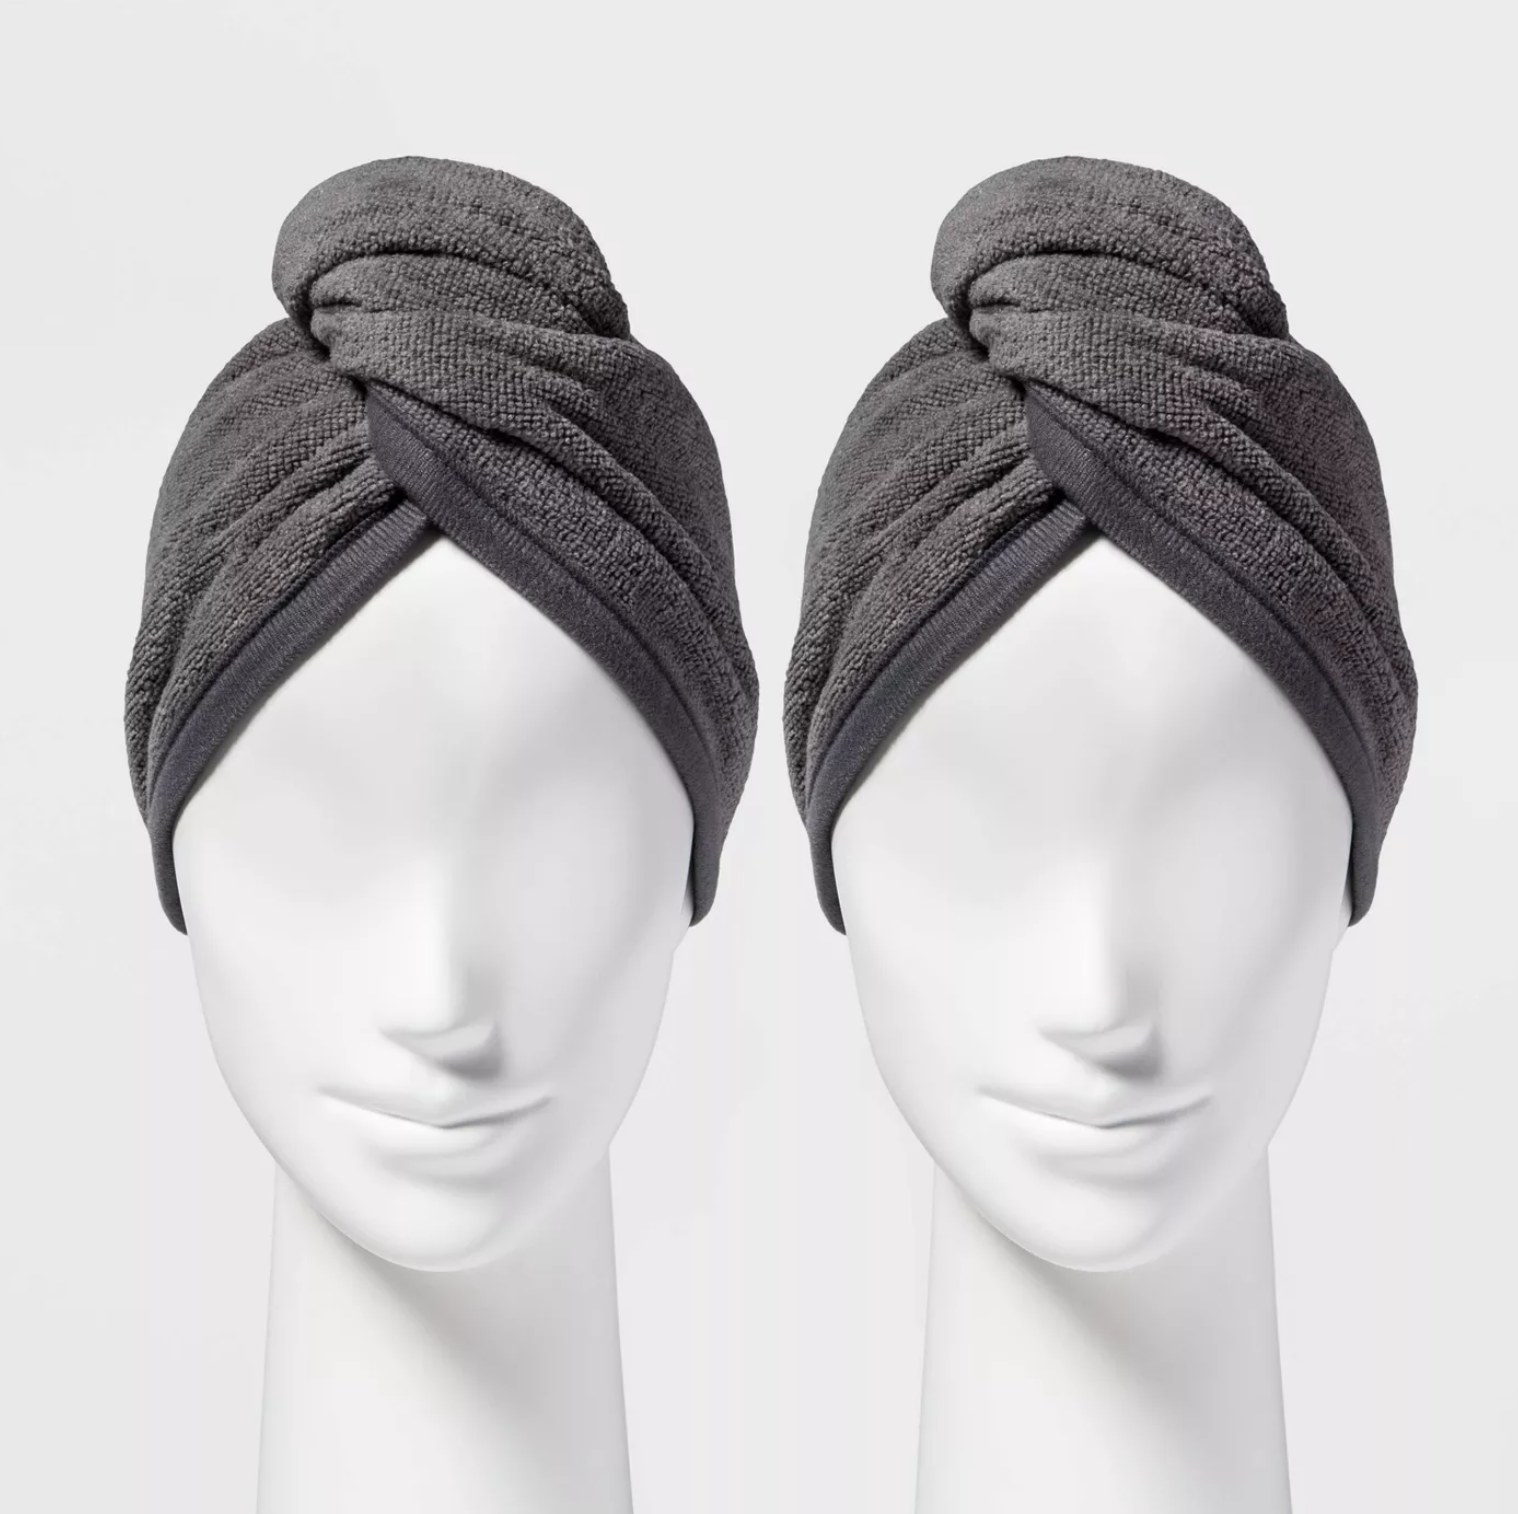 two gray bath wraps on mannequin heads